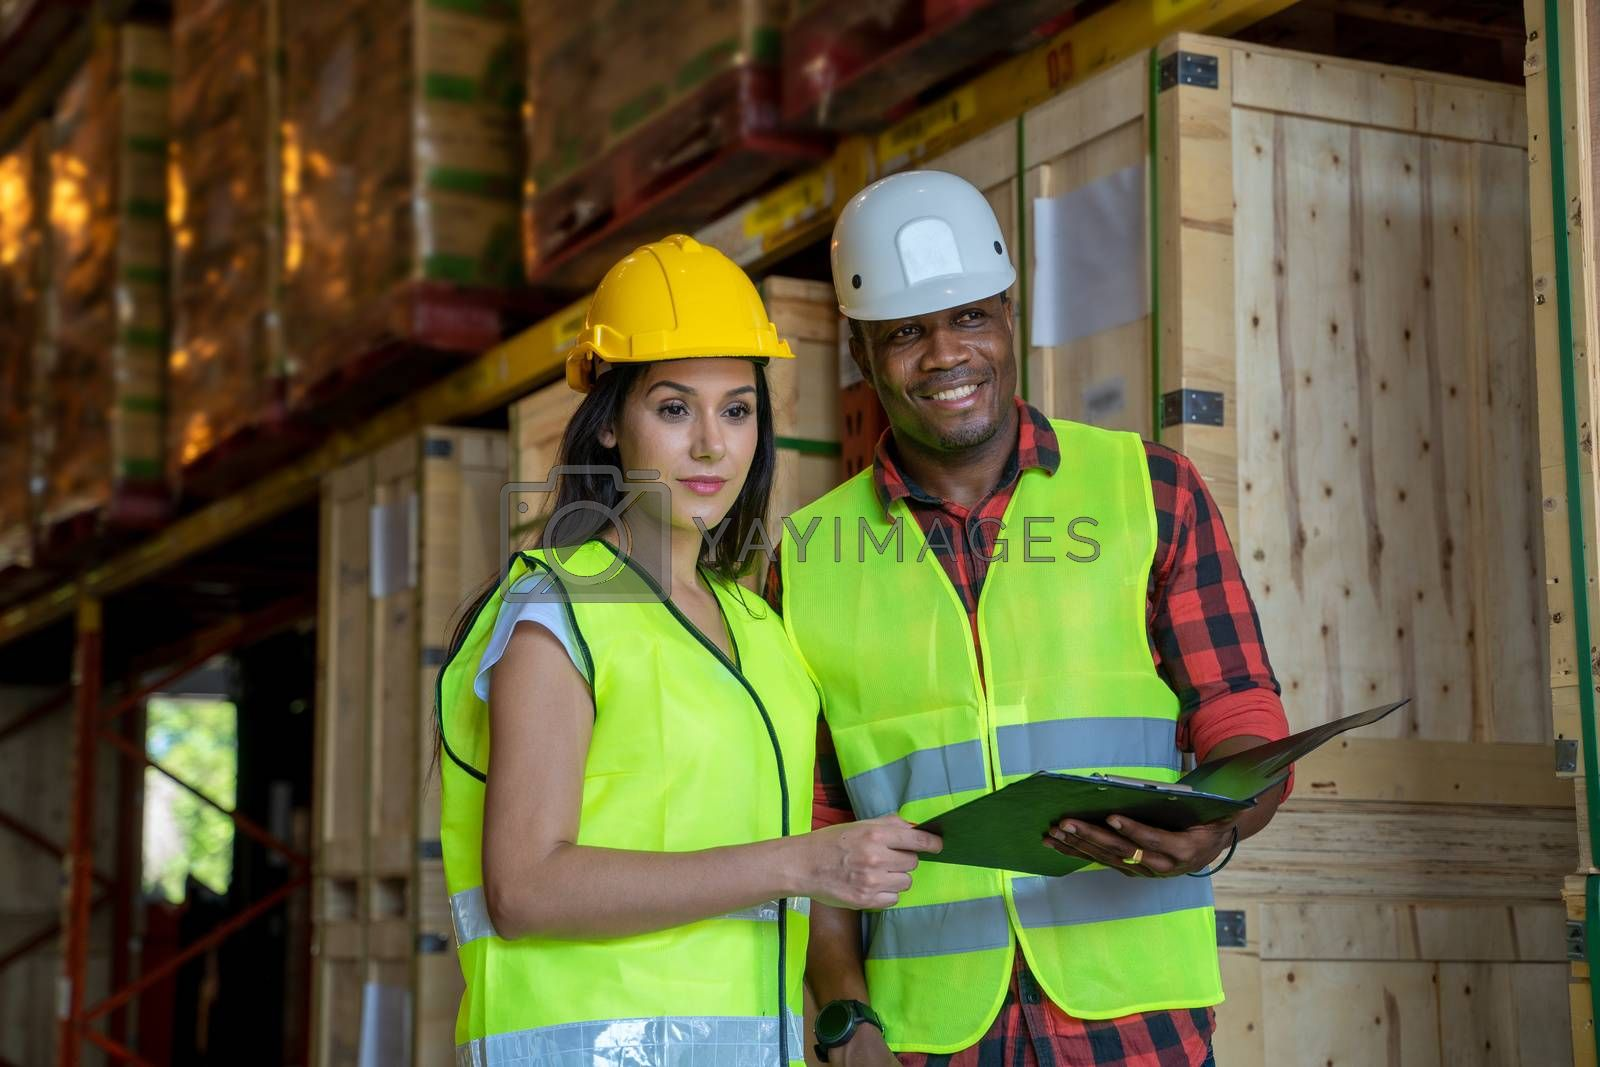 African American worker working with clipboards at warehouse.